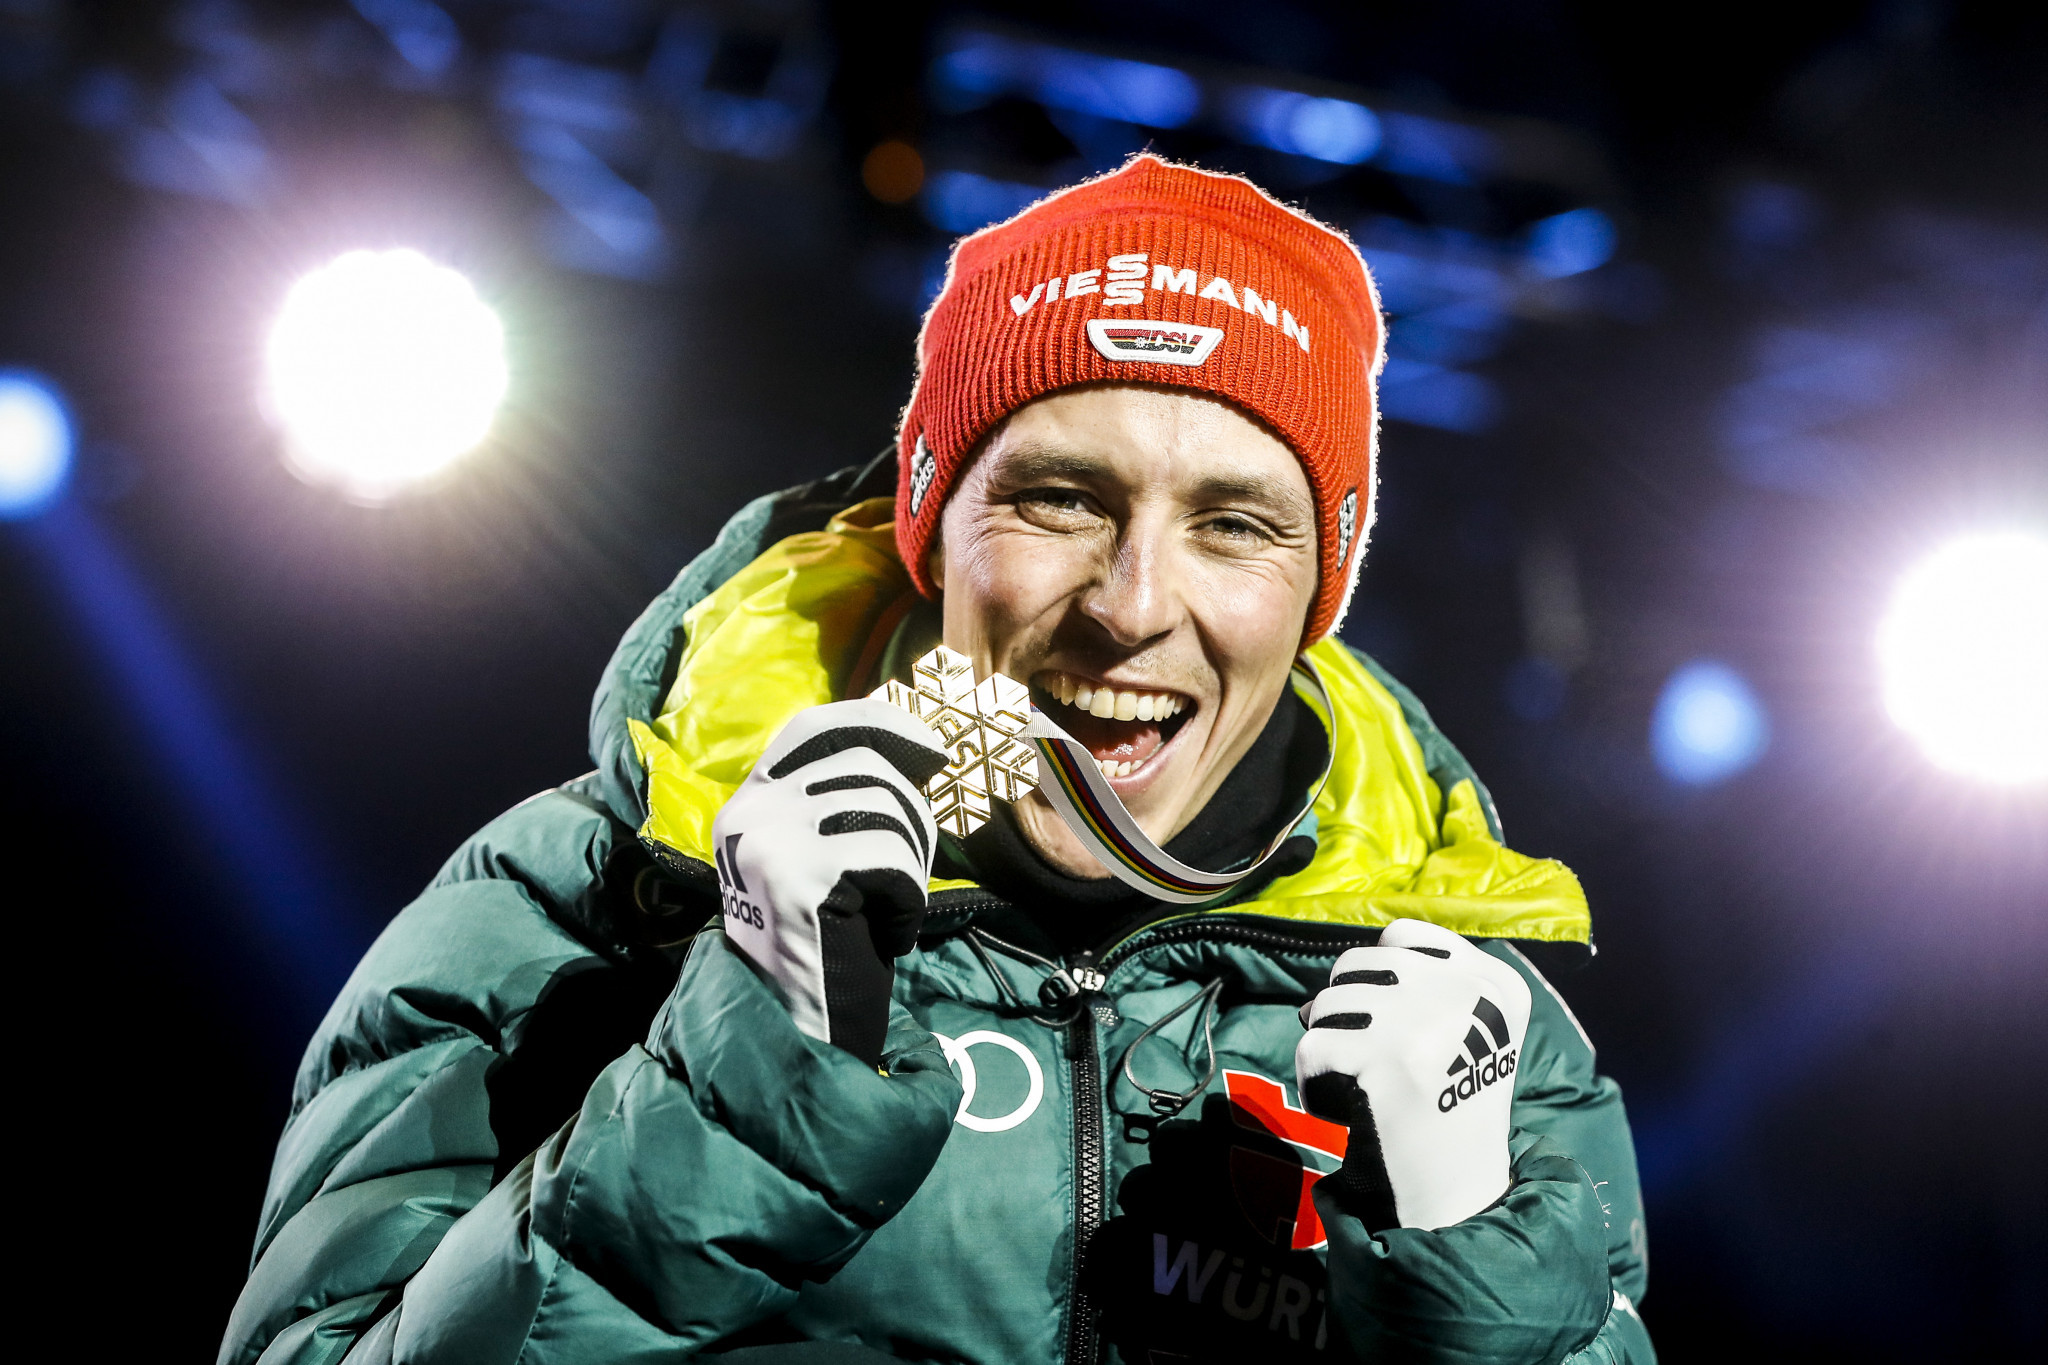 Germany's Eric Frenzel secured his sixth world title at the FIS Nordic World Ski Championships in Seefeld ©Getty Images